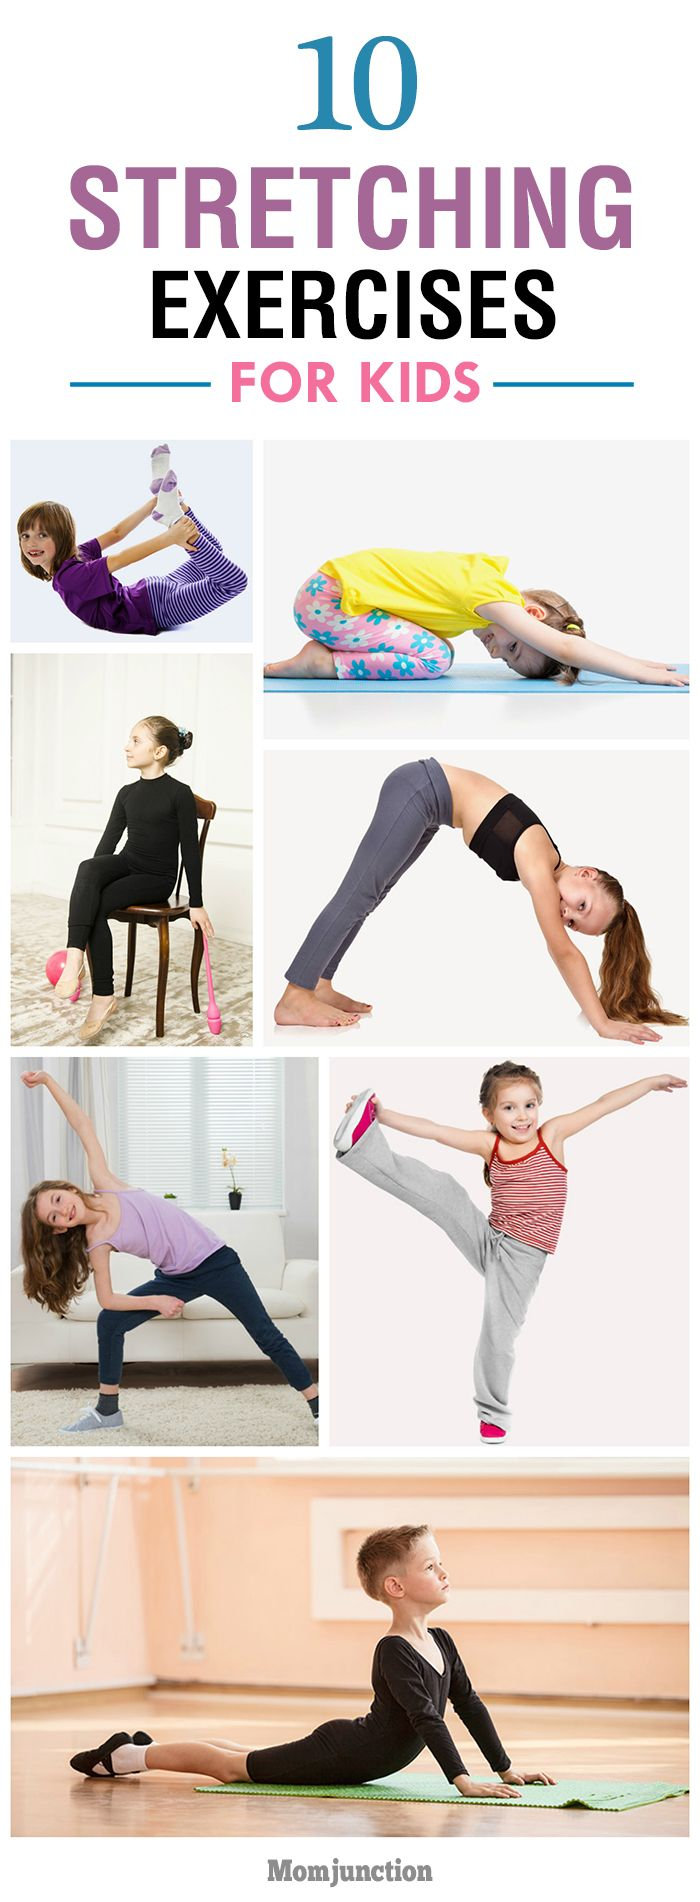 Practicing stretching exercises for kids before their workouts will keep their muscles and joints strong. So, here're the best 10 stretching exercises for them!